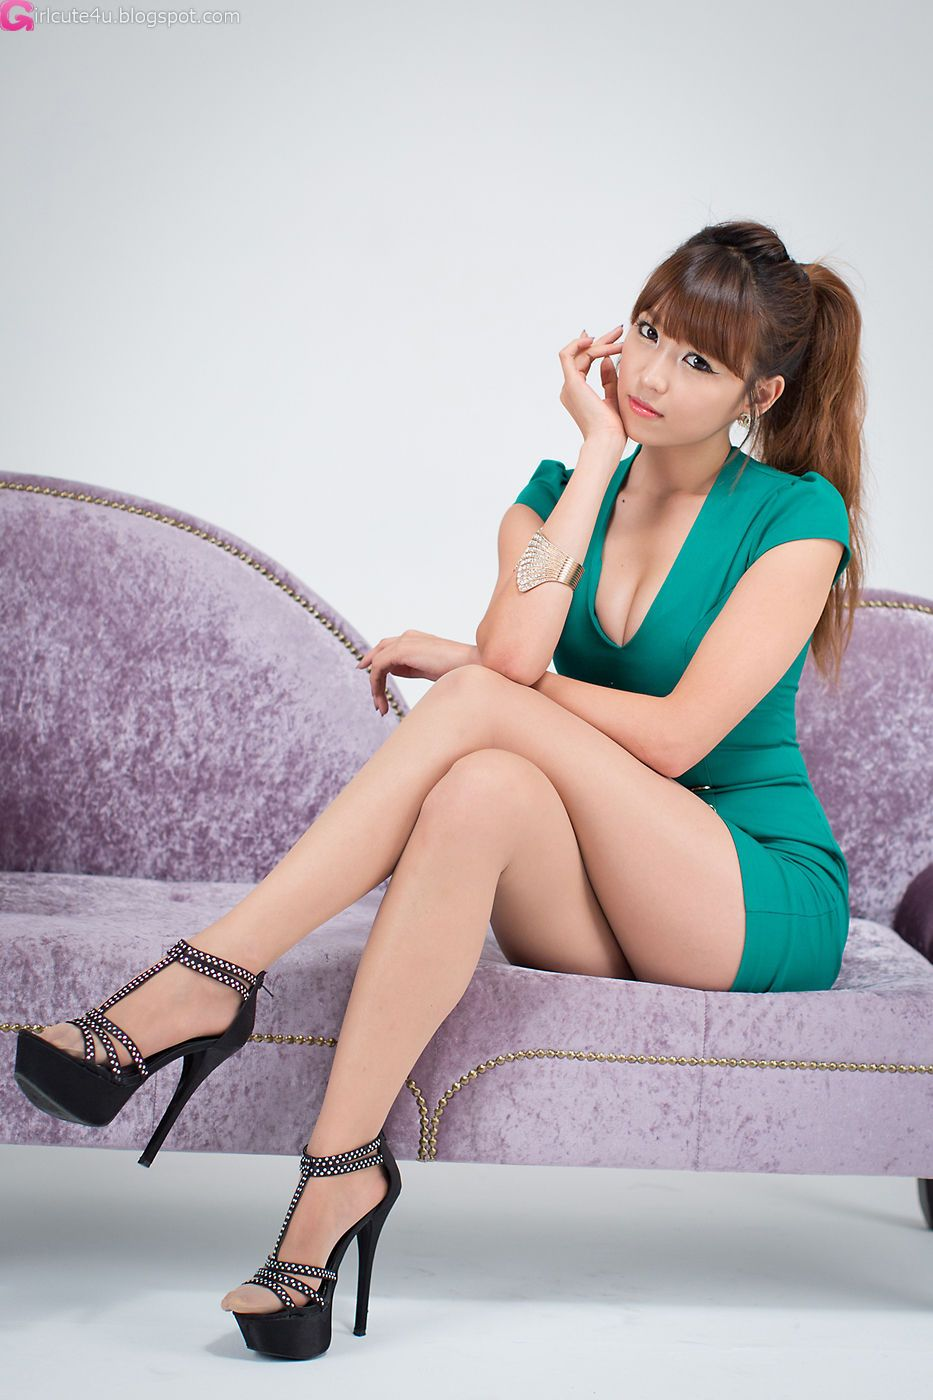 bisexual mfm 3way for couples